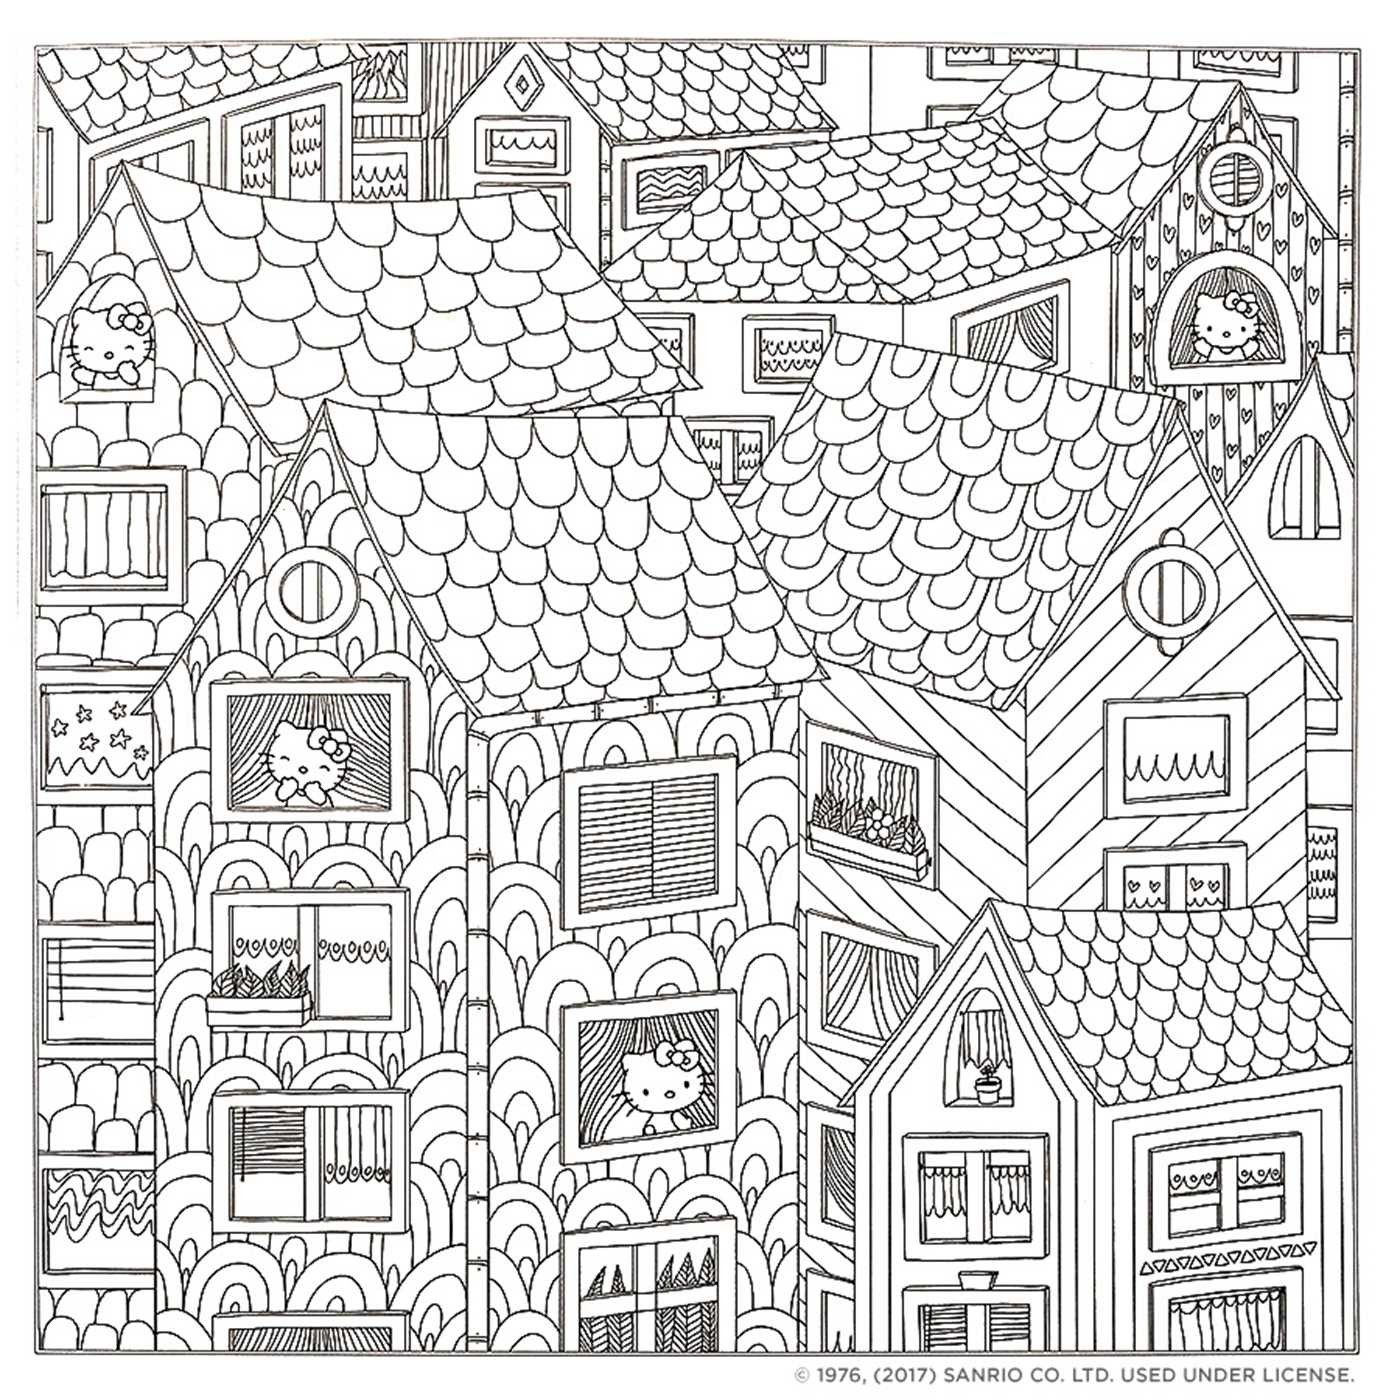 Hello Kitty Amp Friends Coloring Book Hello Kitty Background Hello Kitty Border Hello K Cat Coloring Book Hello Kitty Coloring Hello Kitty Colouring Pages